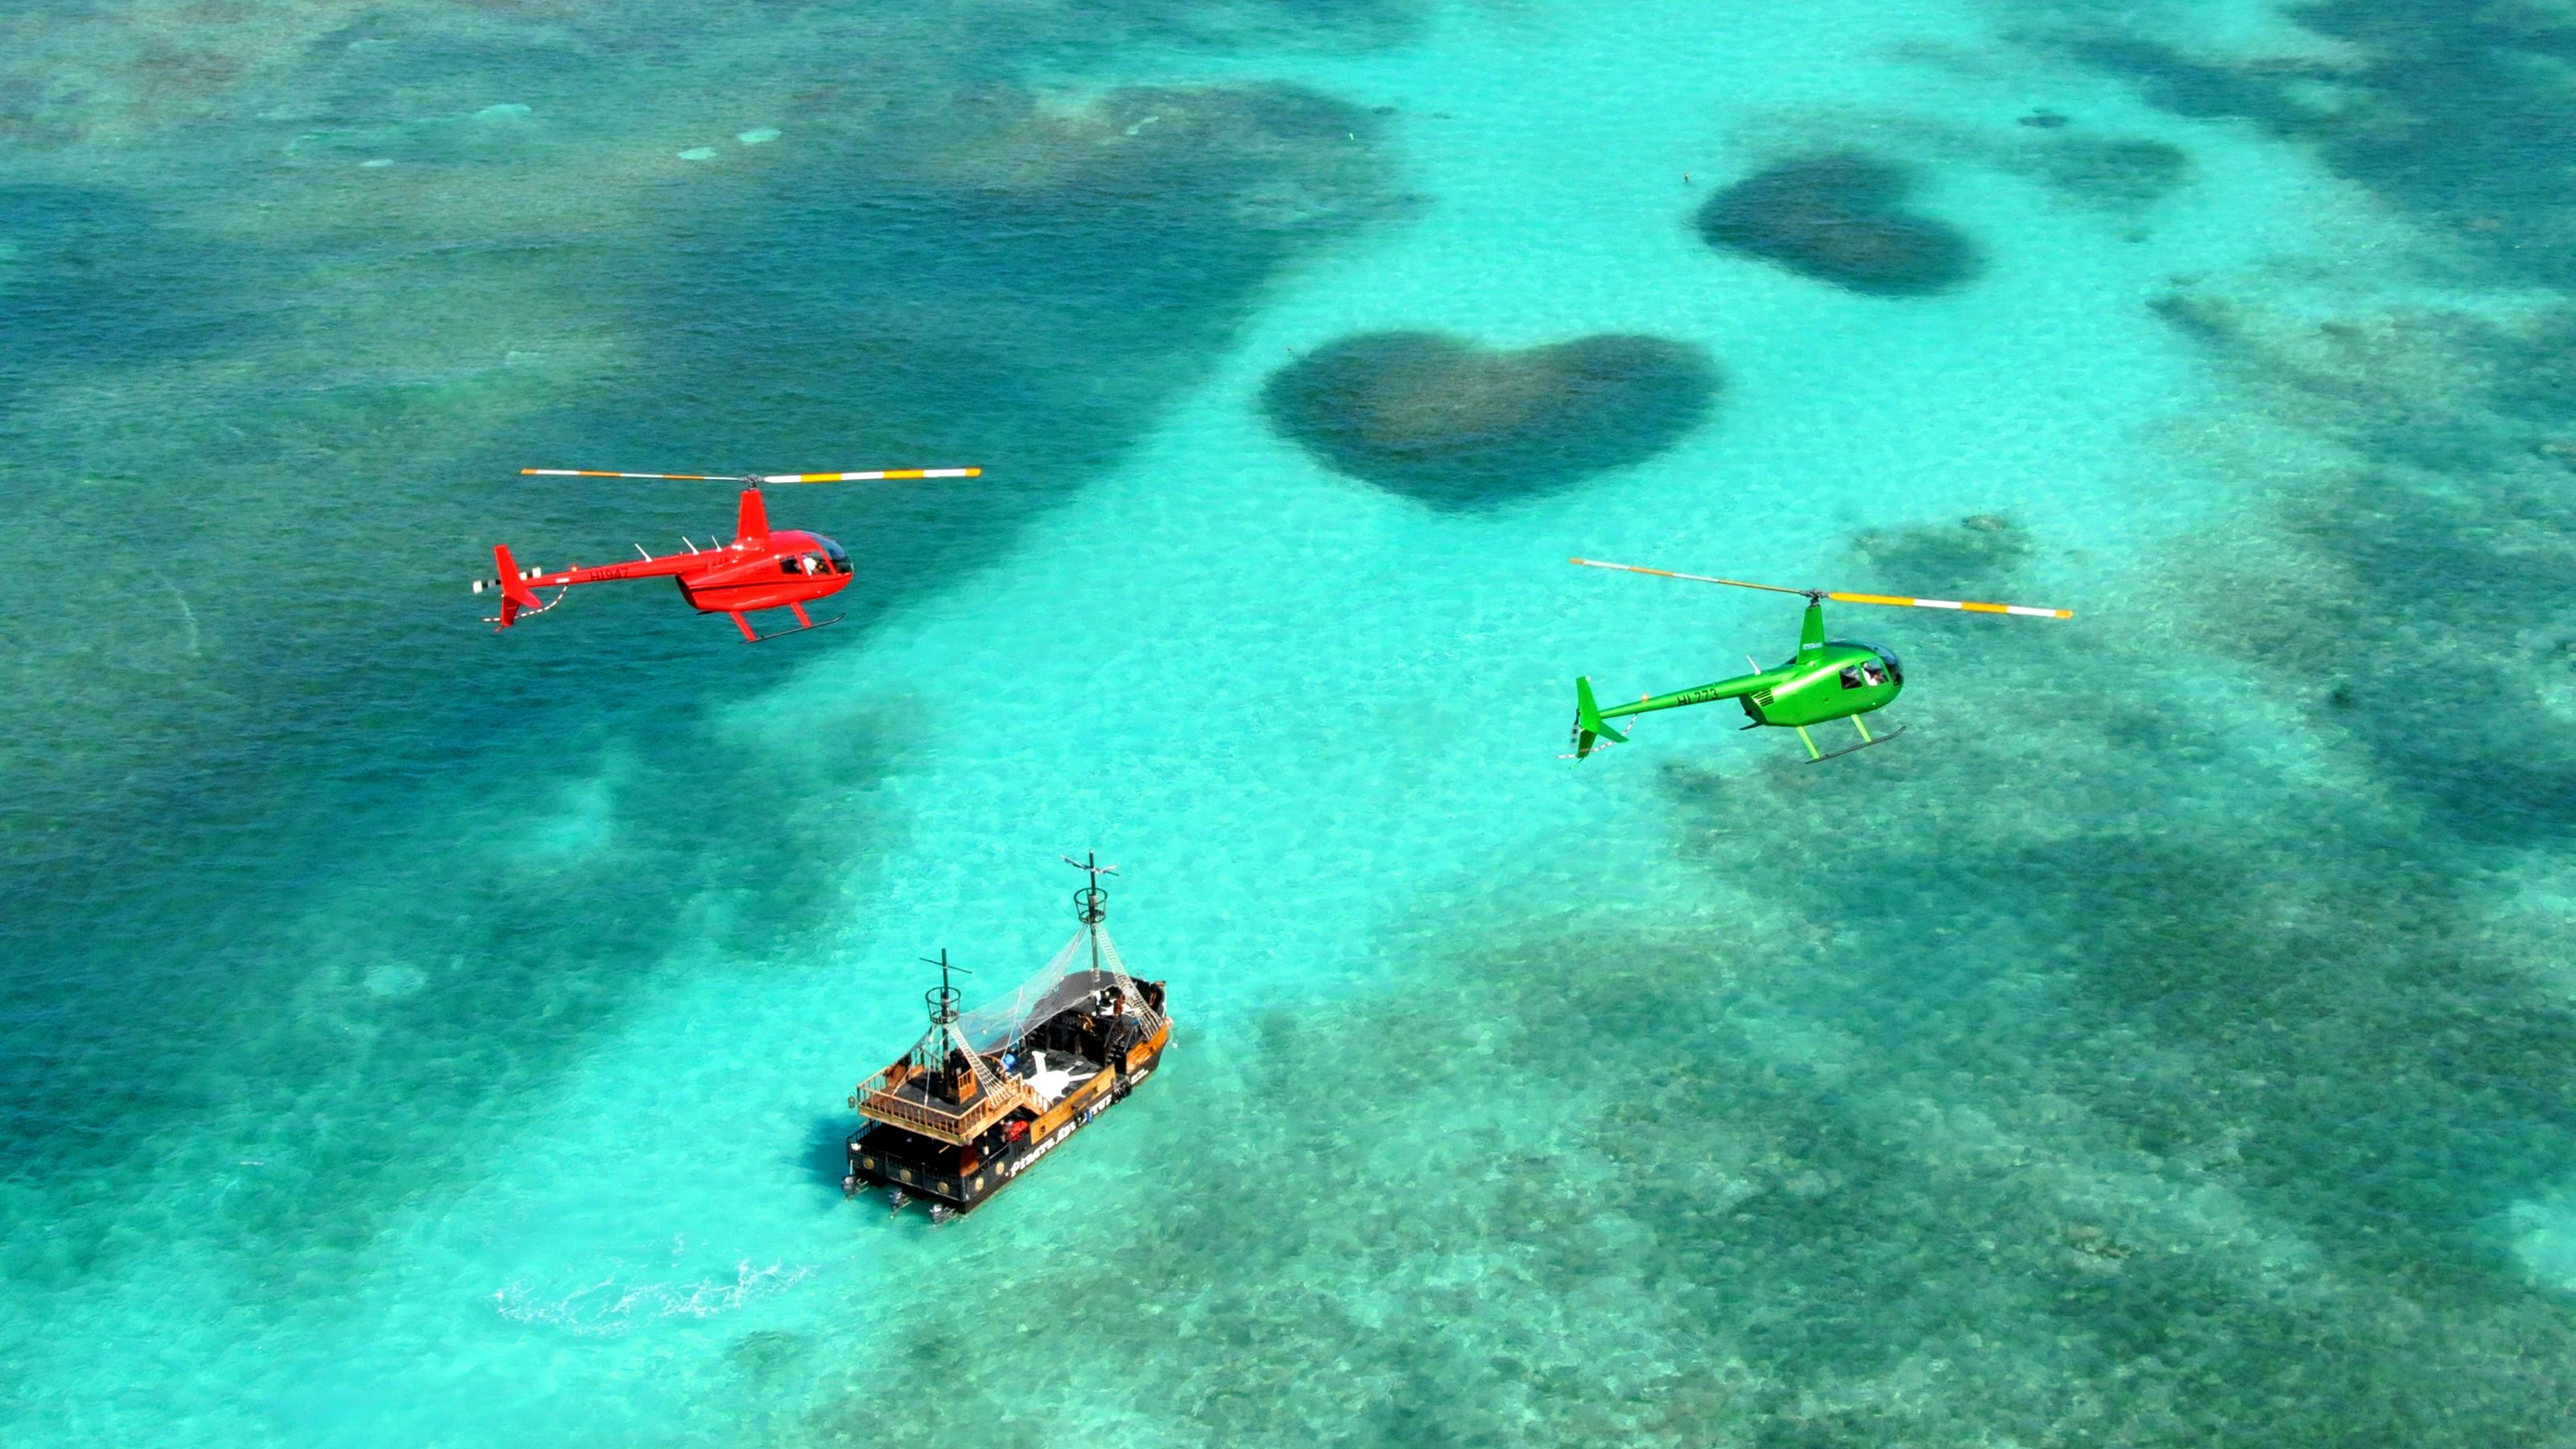 Helicopters over ocean and boat in Punta Cana